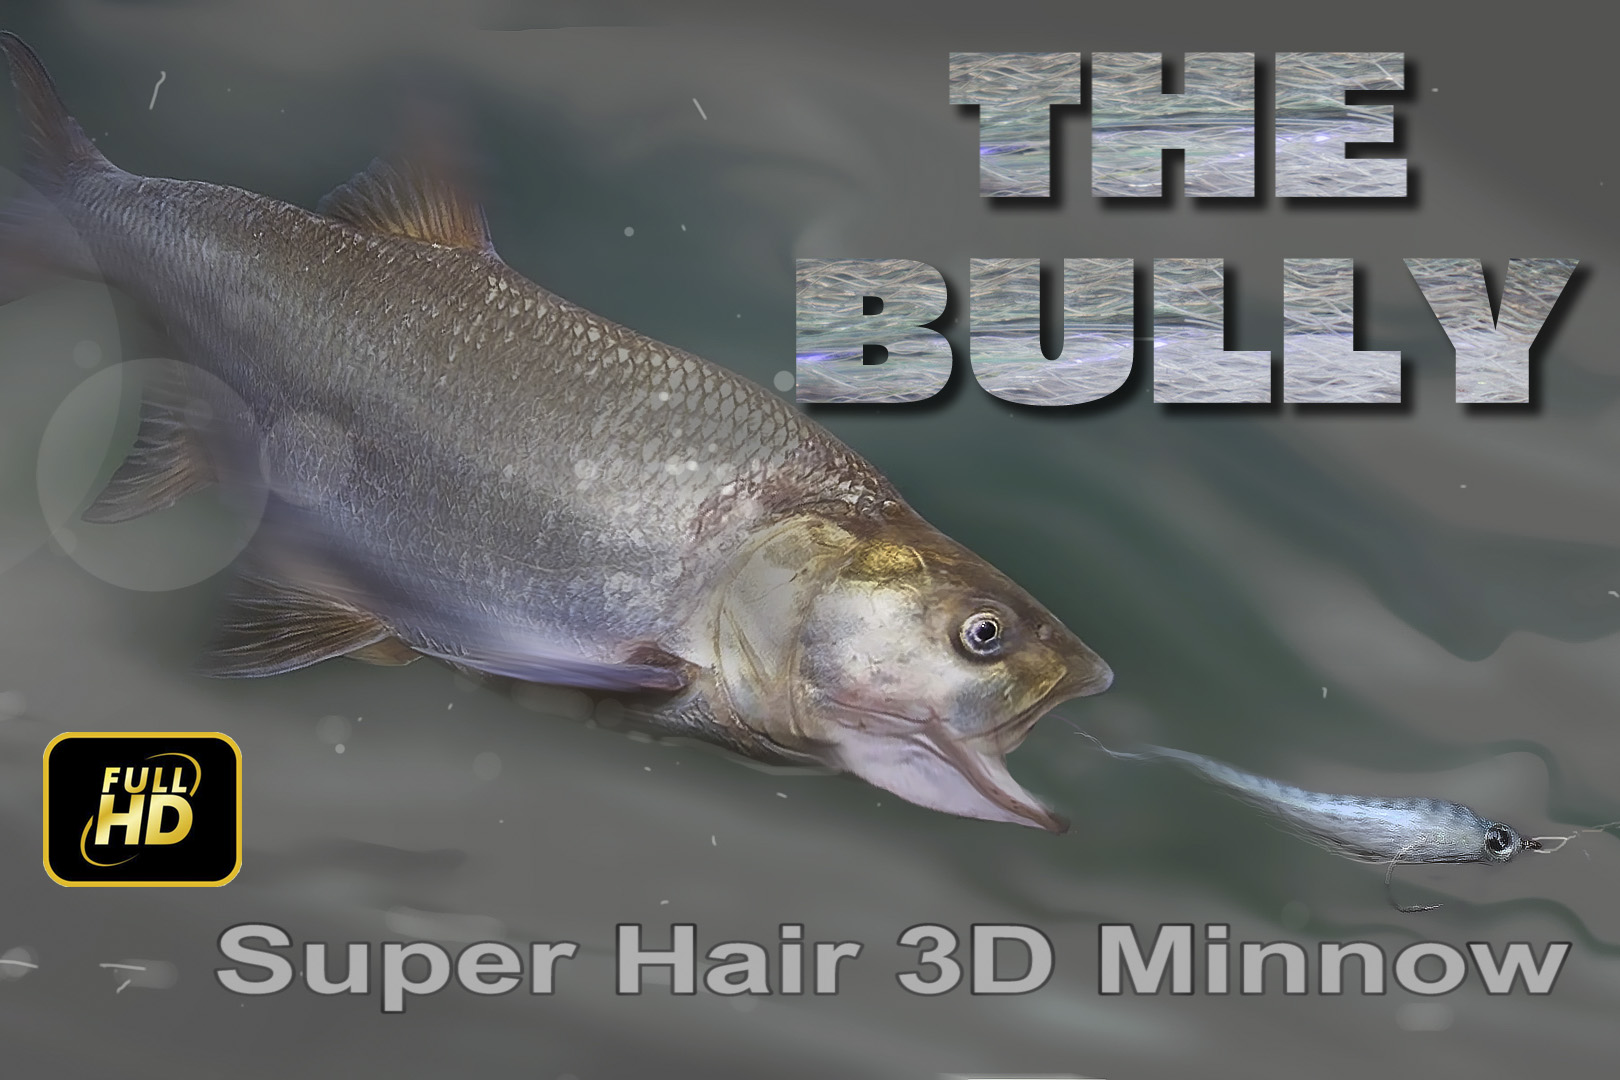 The Bully - Super Hair Streamer